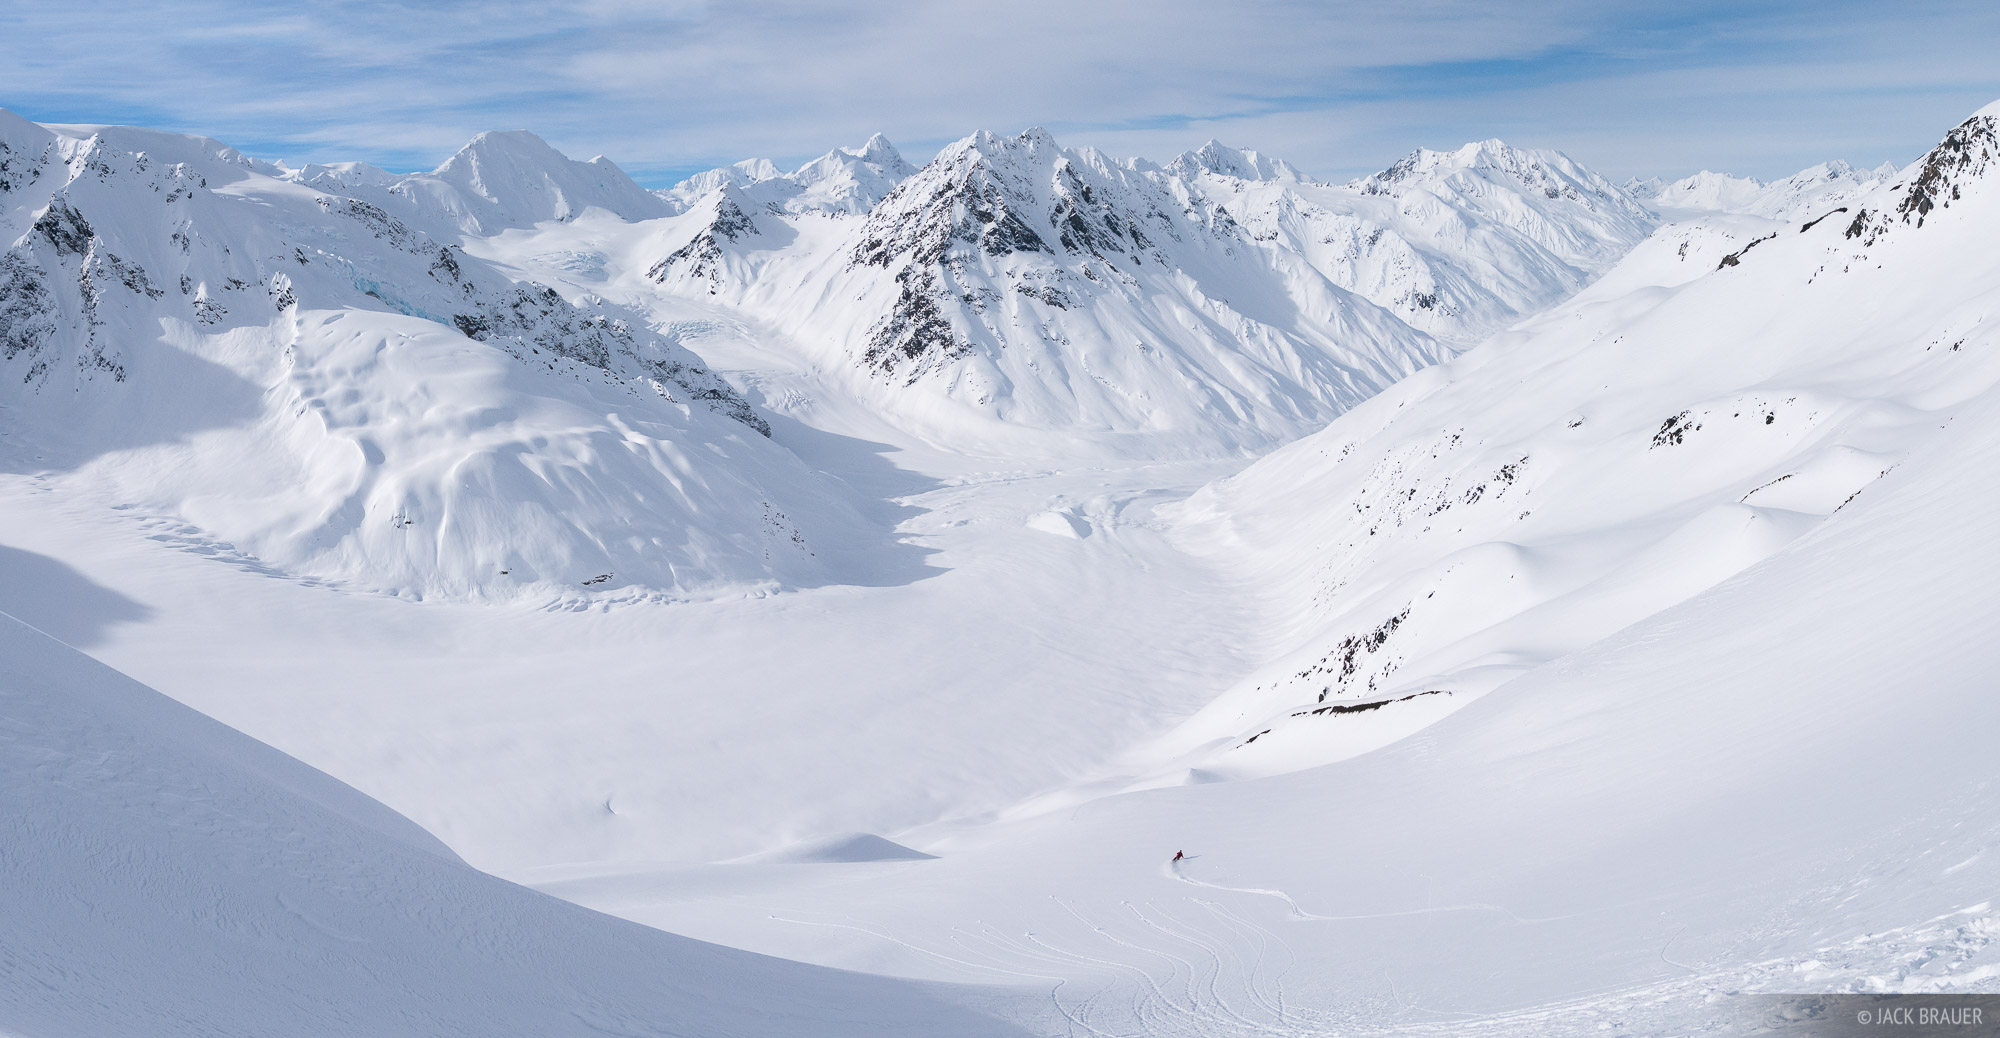 Alaska, Haines, Takhinsha Mountains, skiing, photo